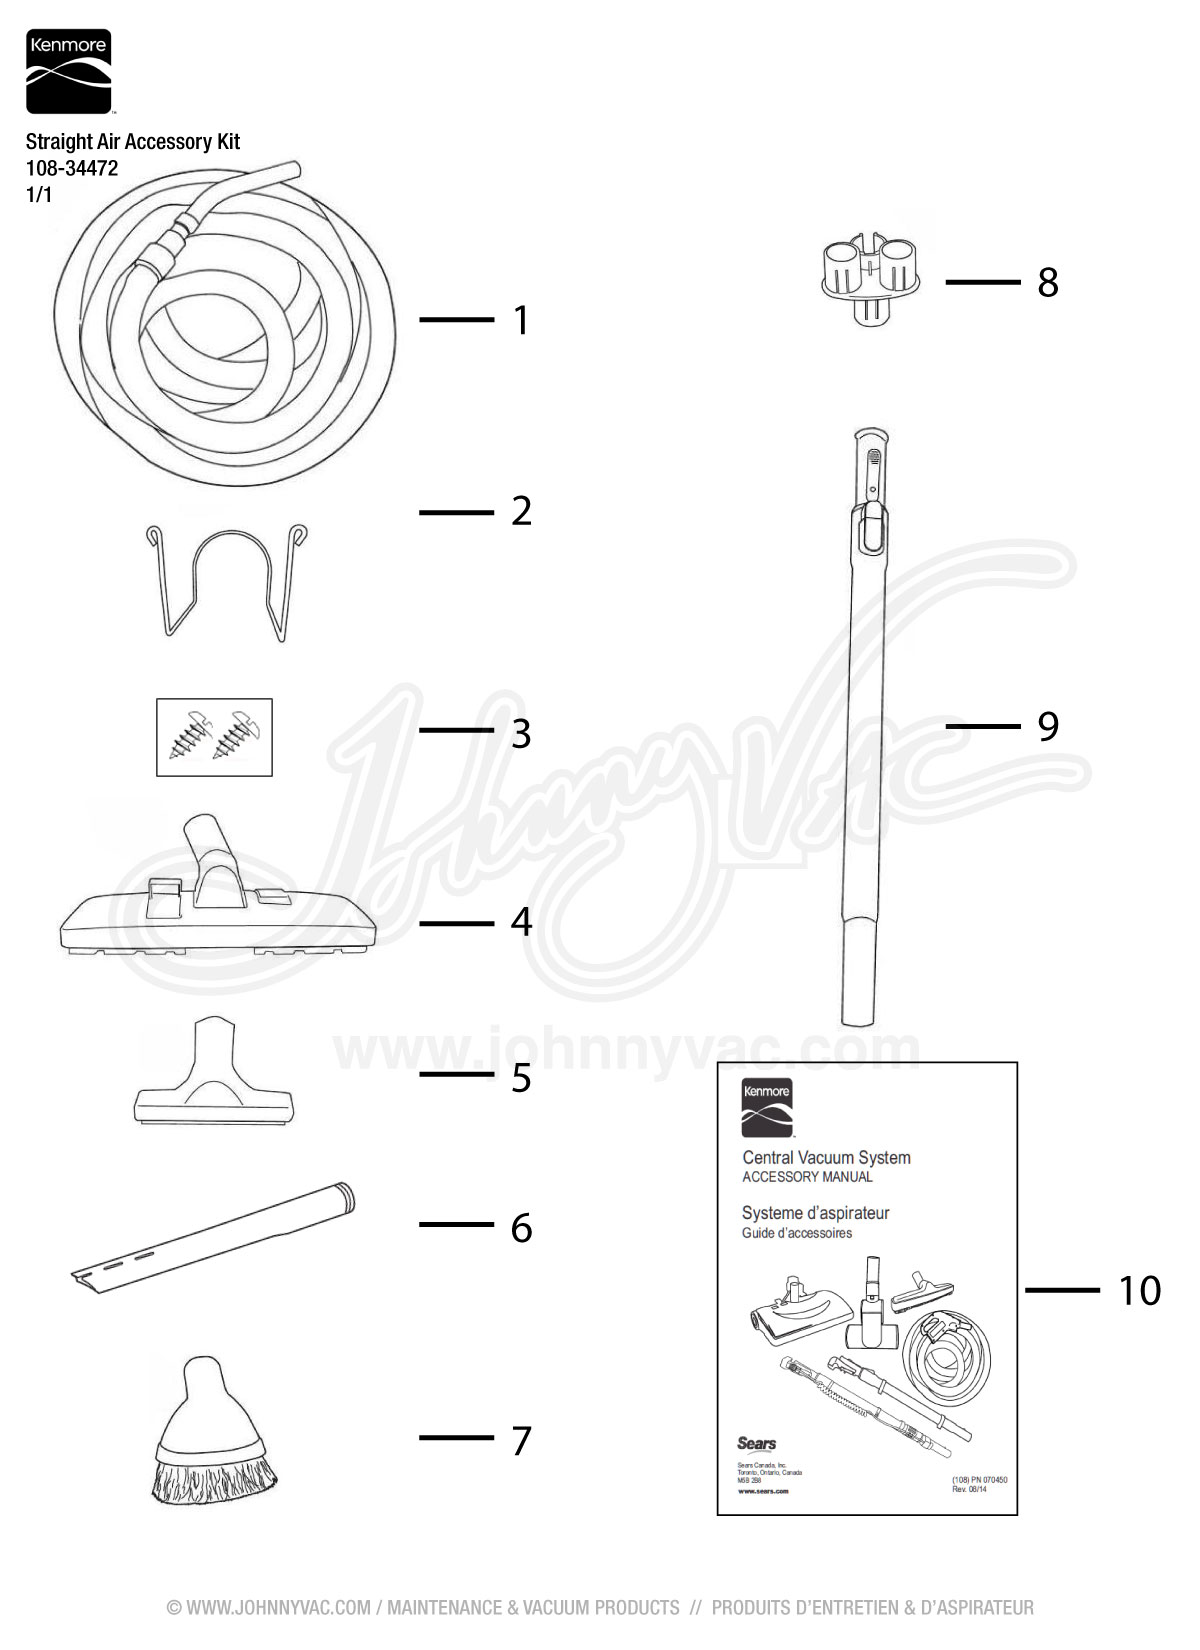 hight resolution of  kenmore straight air accessory kit 108 34472 on kenmore model 110 wiring diagram electric